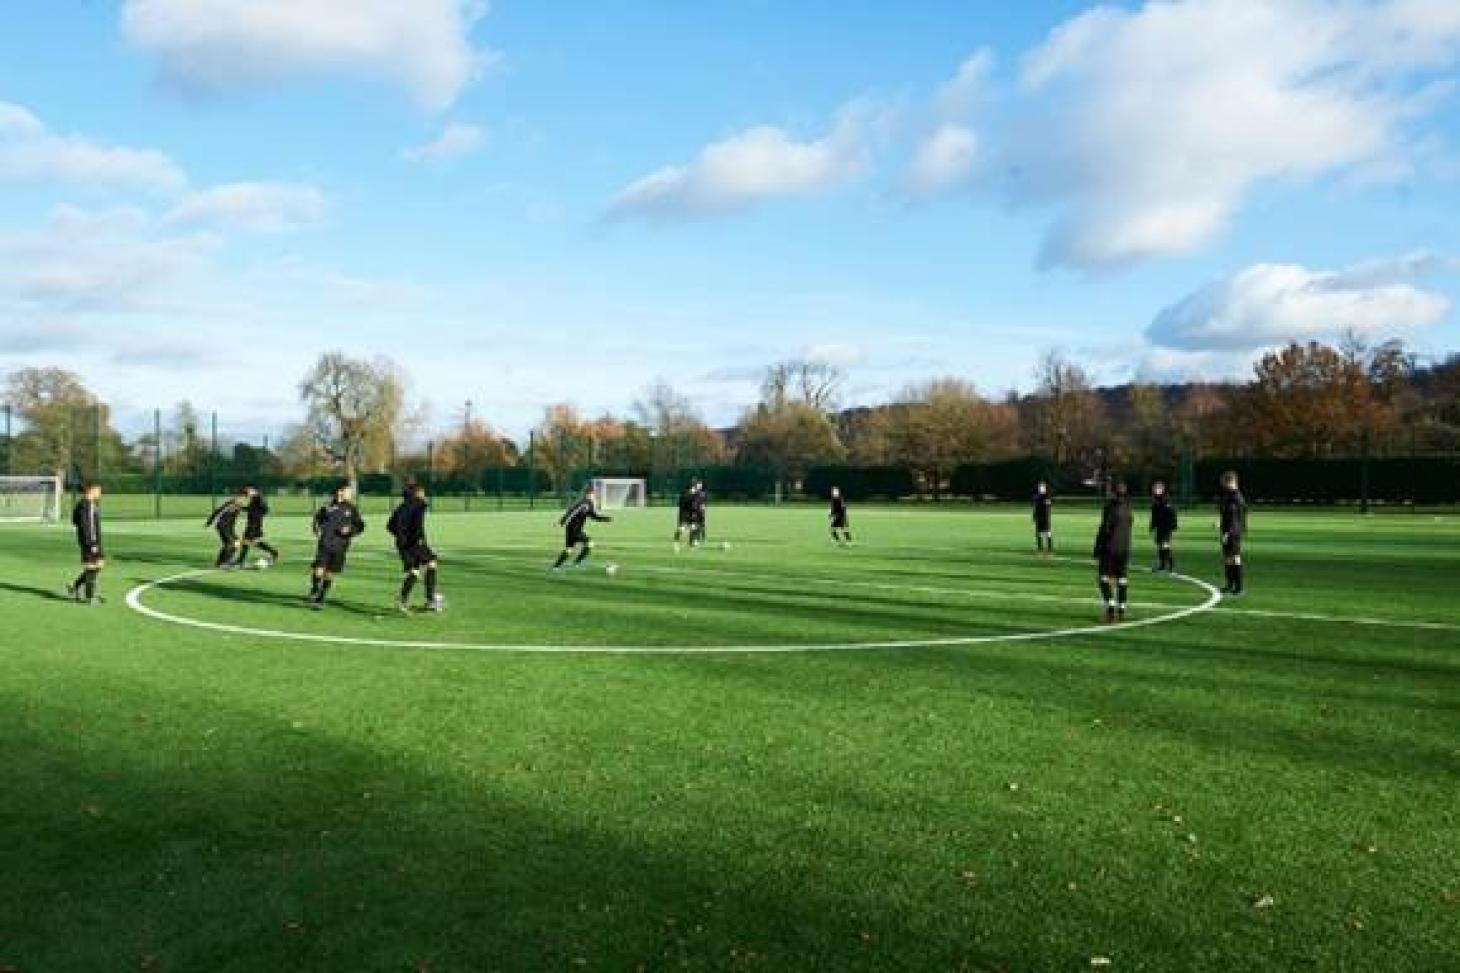 Bisham Abbey National Sports Centre 11 a side | Grass football pitch